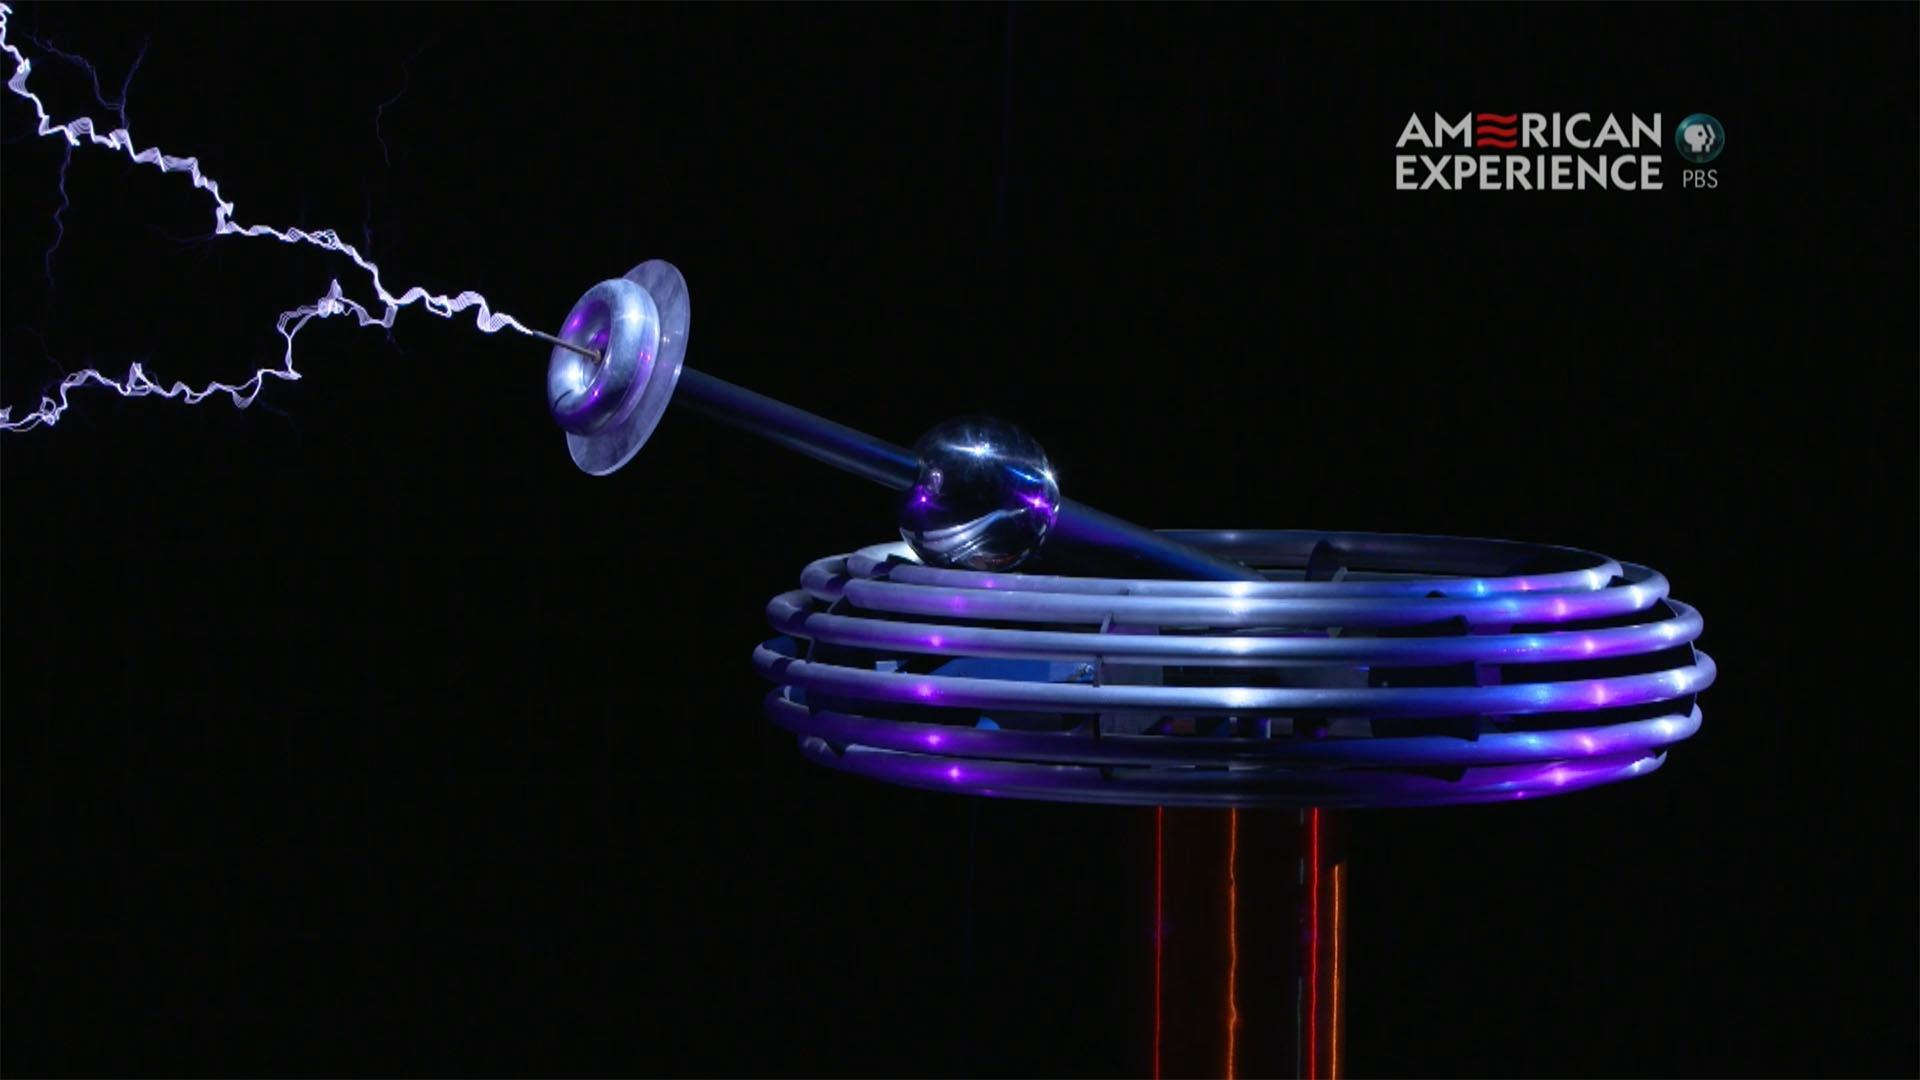 American Experience Tesla Coil Kcts 9